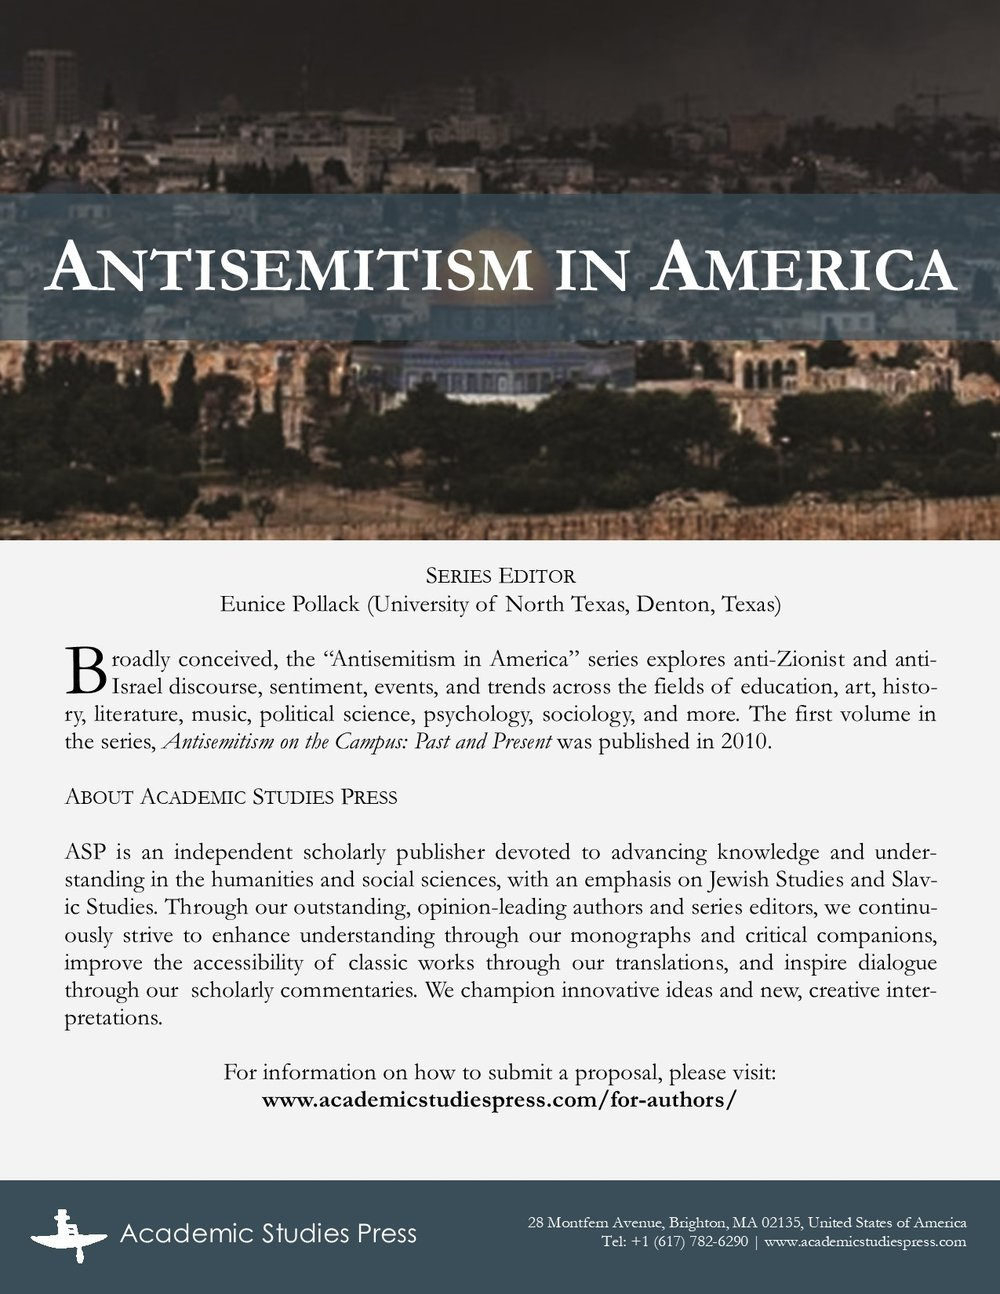 Antisemitism in America Flyer.jpg